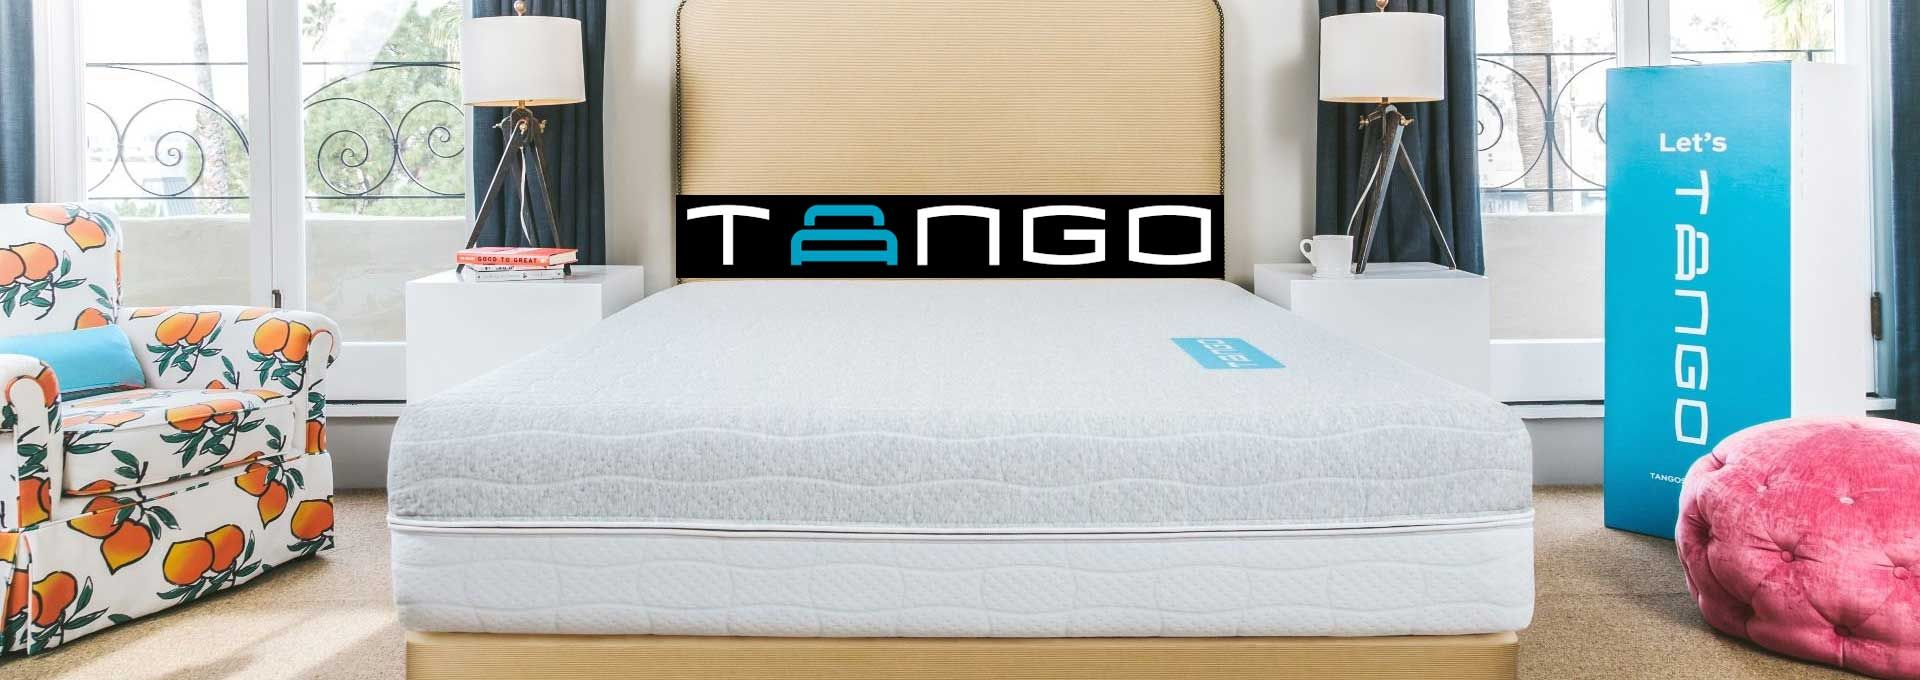 tango mattress review mattress